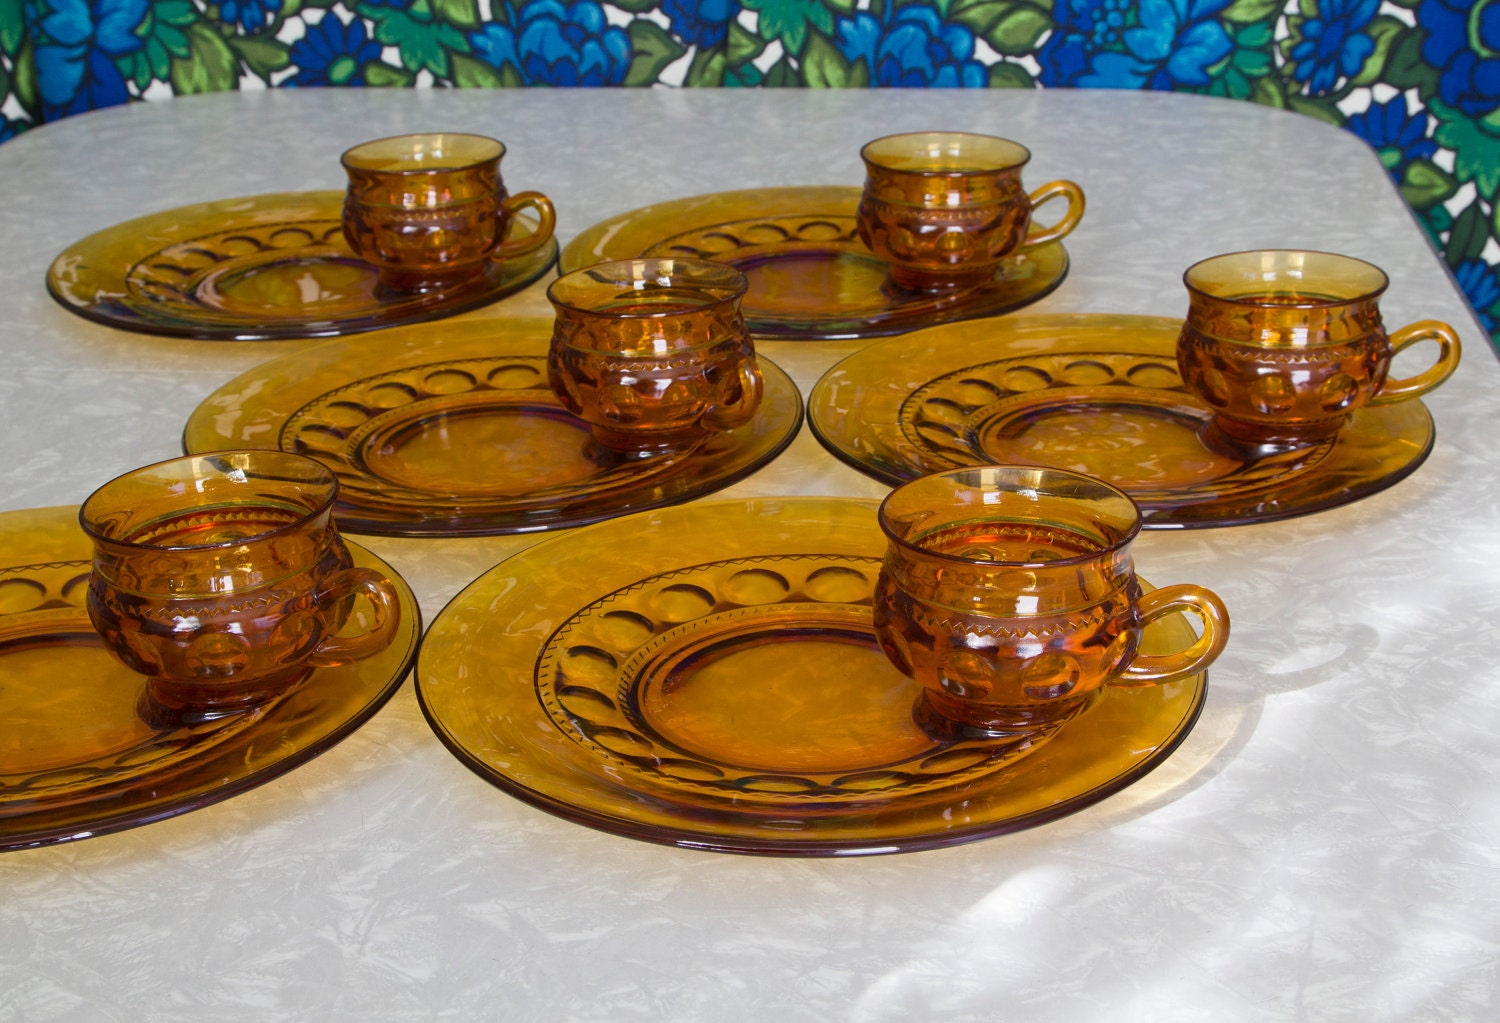 Amber glass snack sets with plate and teacup kings crown